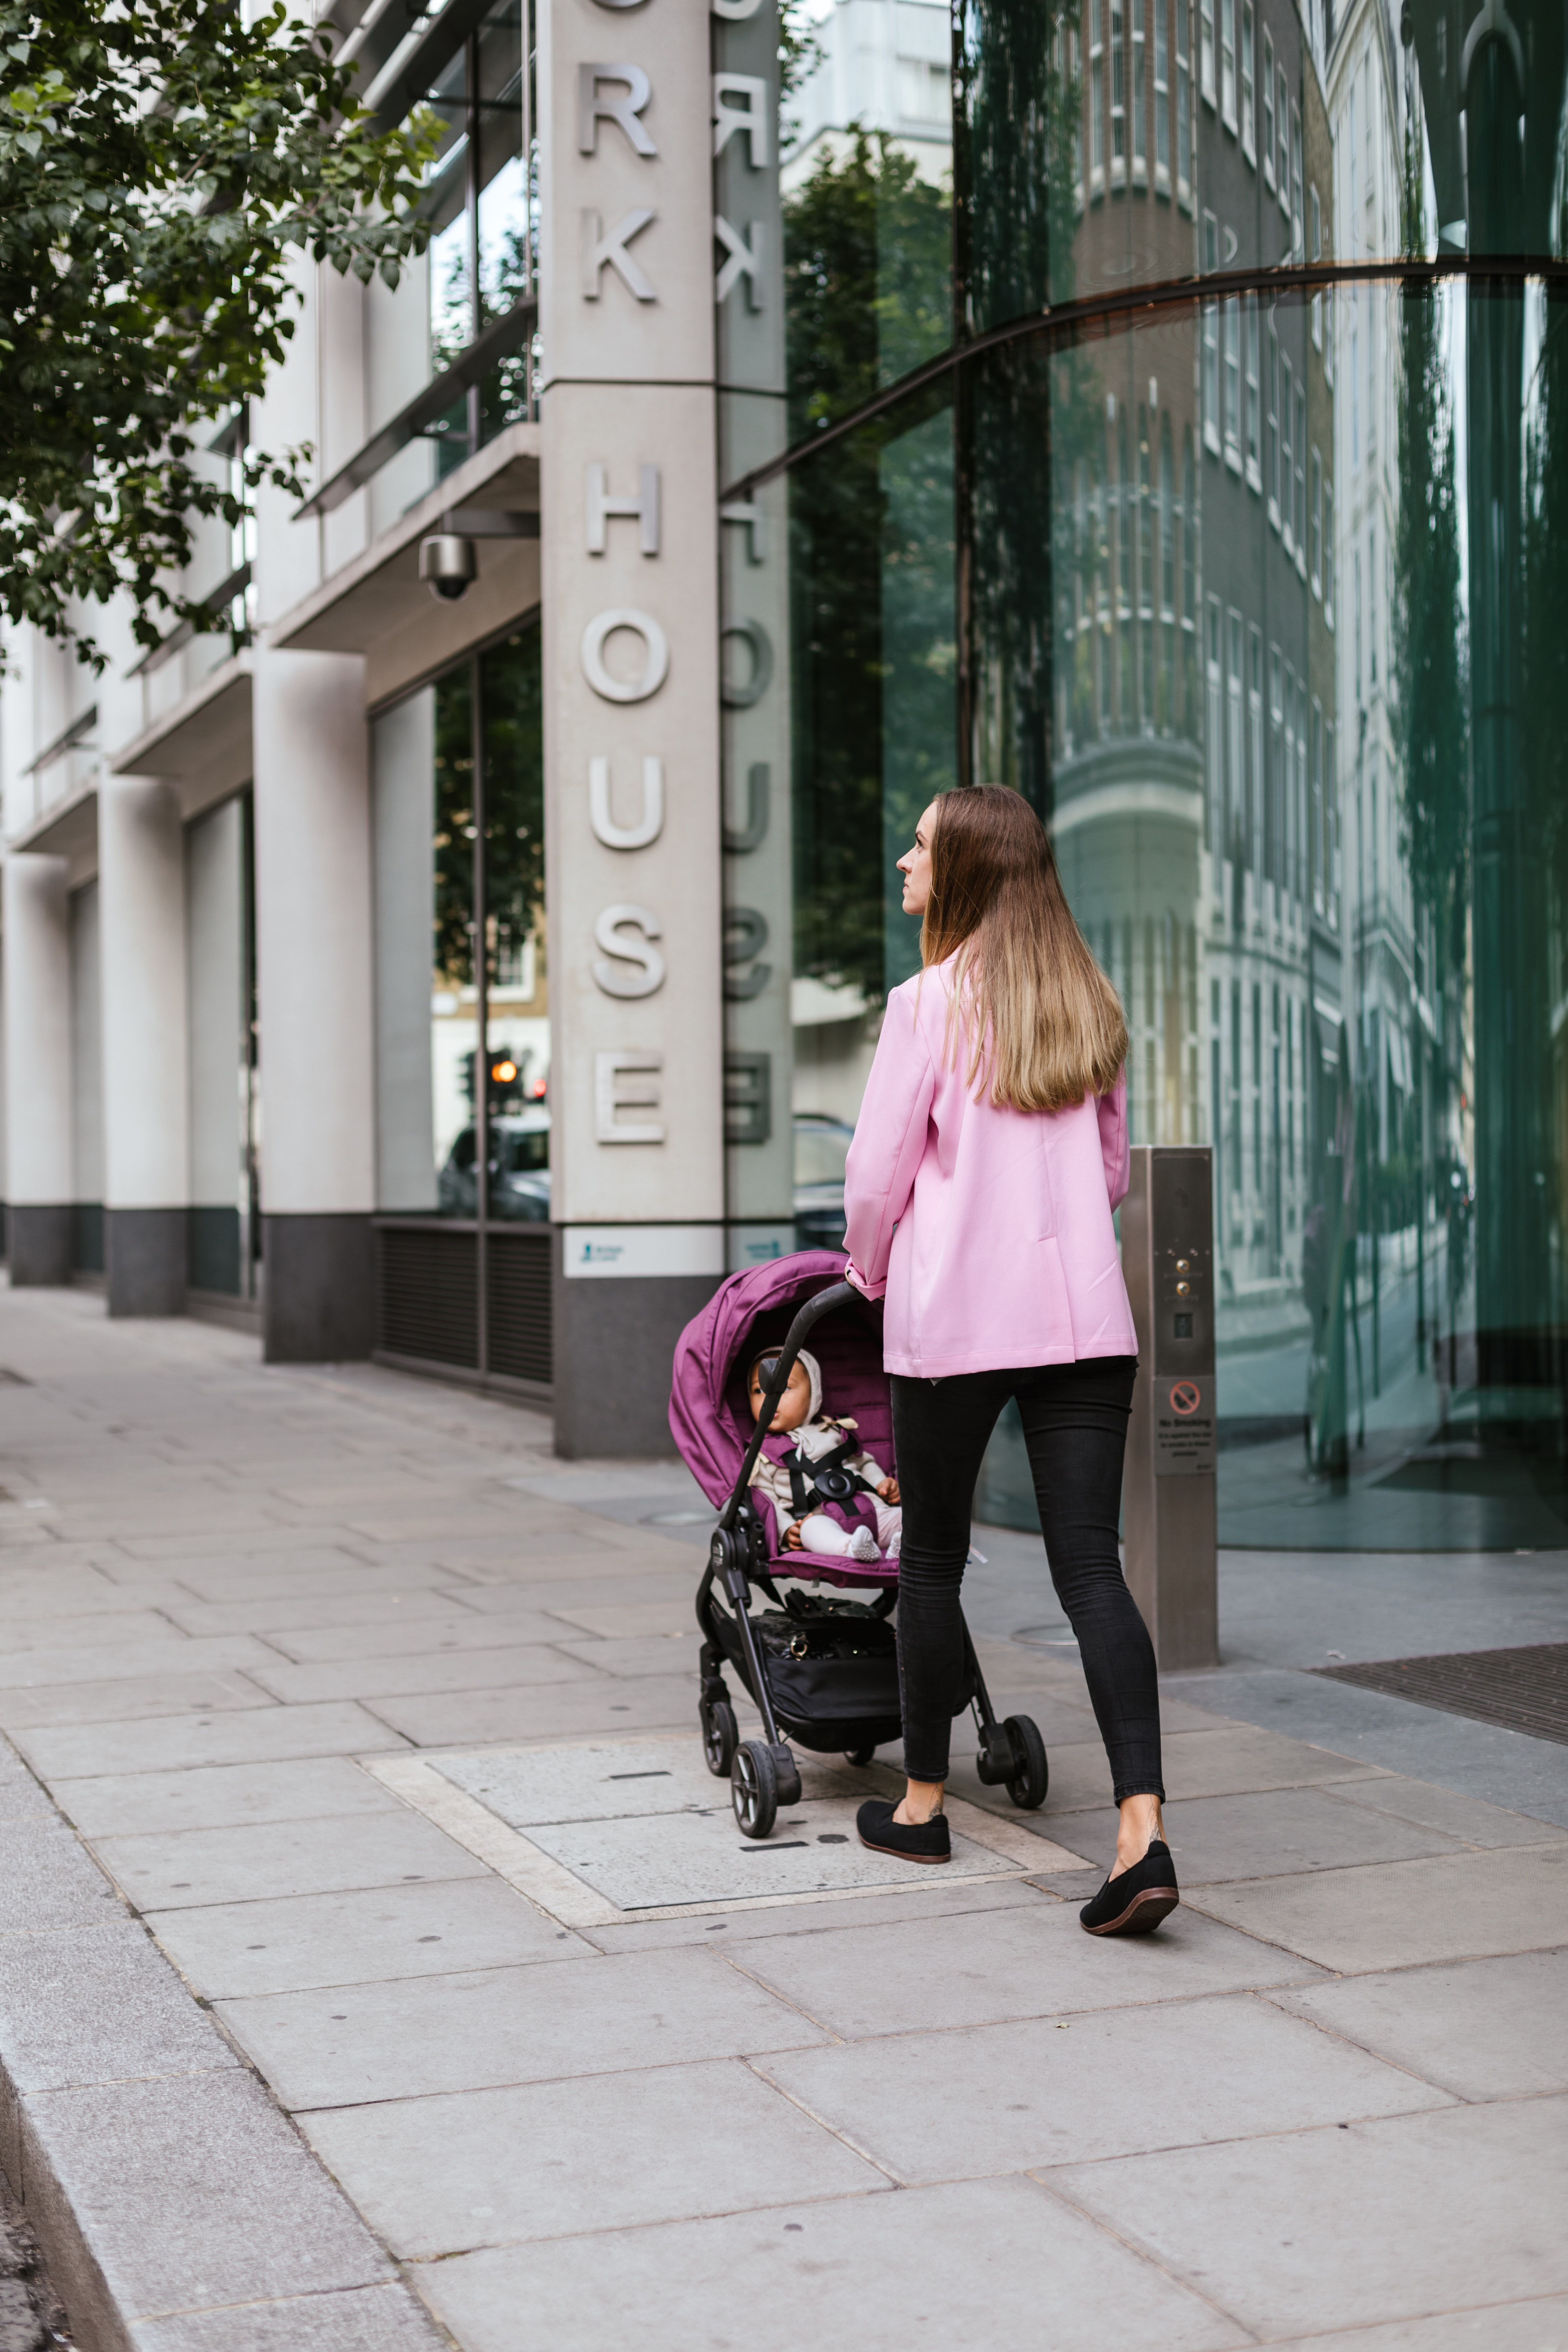 woman walking with child inside stroller